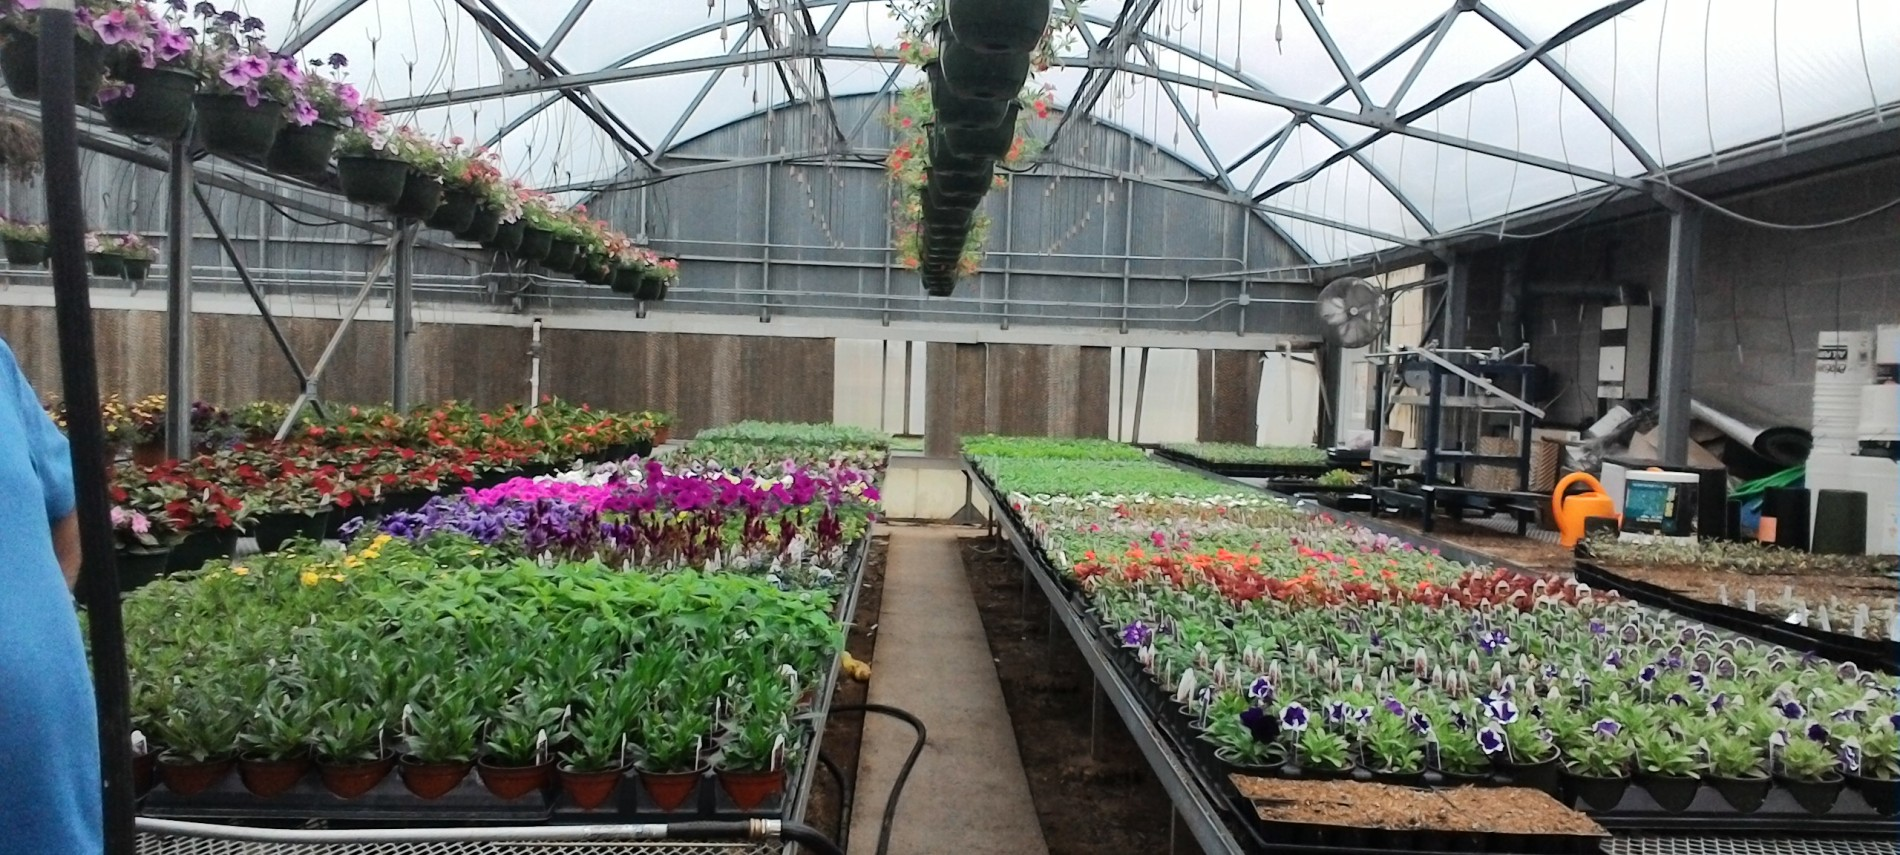 Large domed greenhouse with hanging plants along with row and rows of bulbed plants, hoses watering flowers.